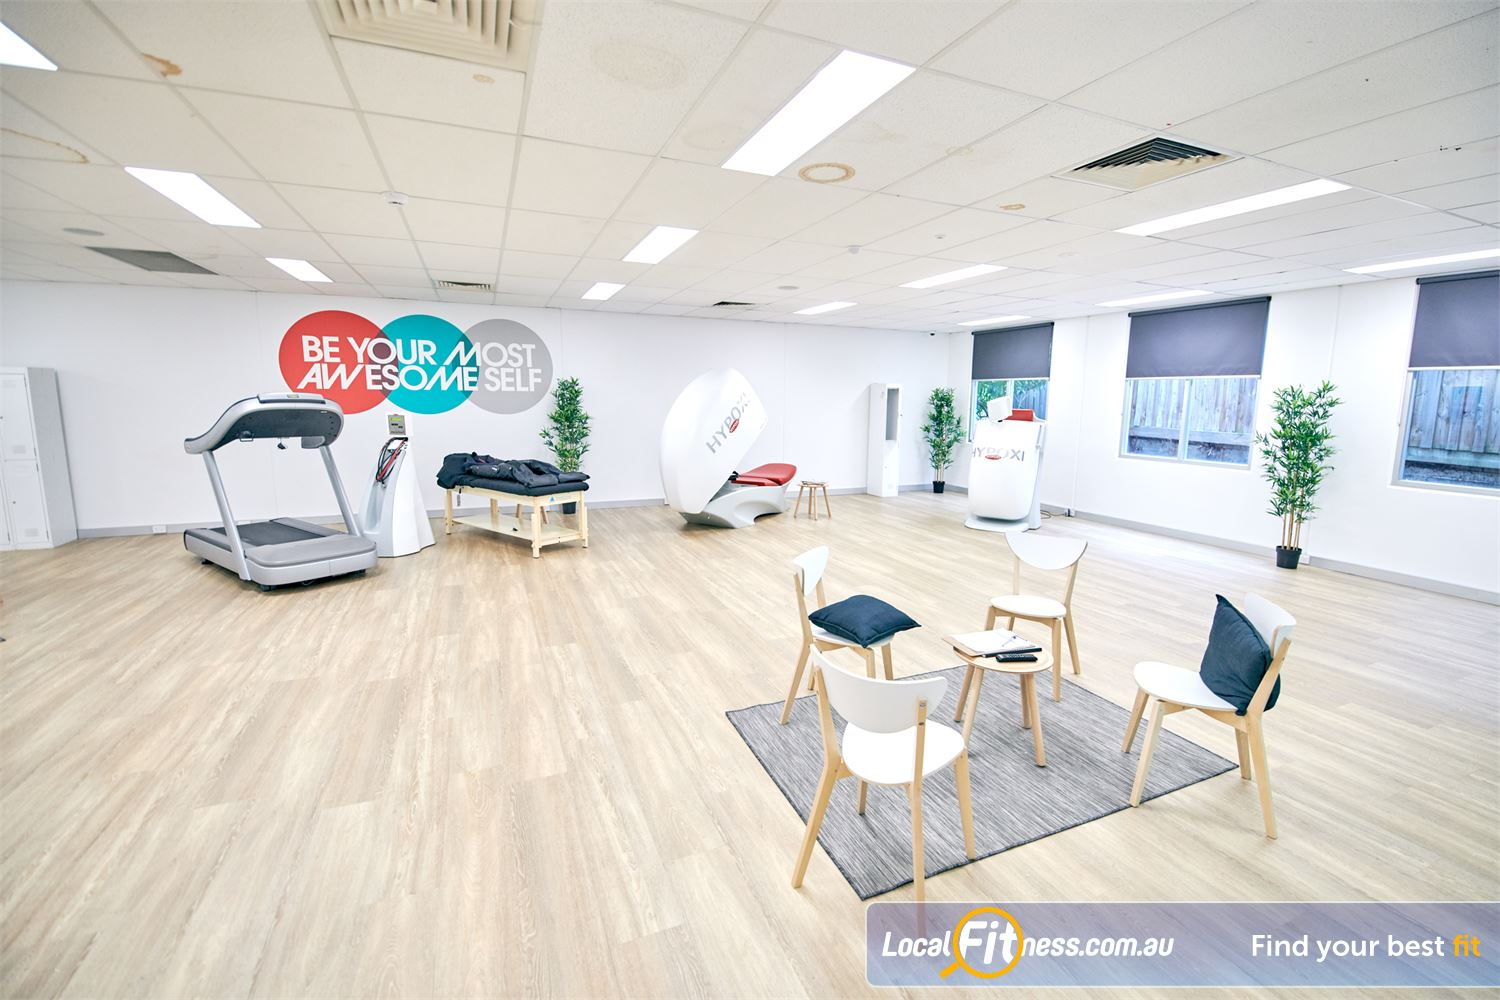 HYPOXI Weight Loss Balgowlah Our HYPOXI Balgowlah weight-loss is personalised catering 3-4 people at a time.